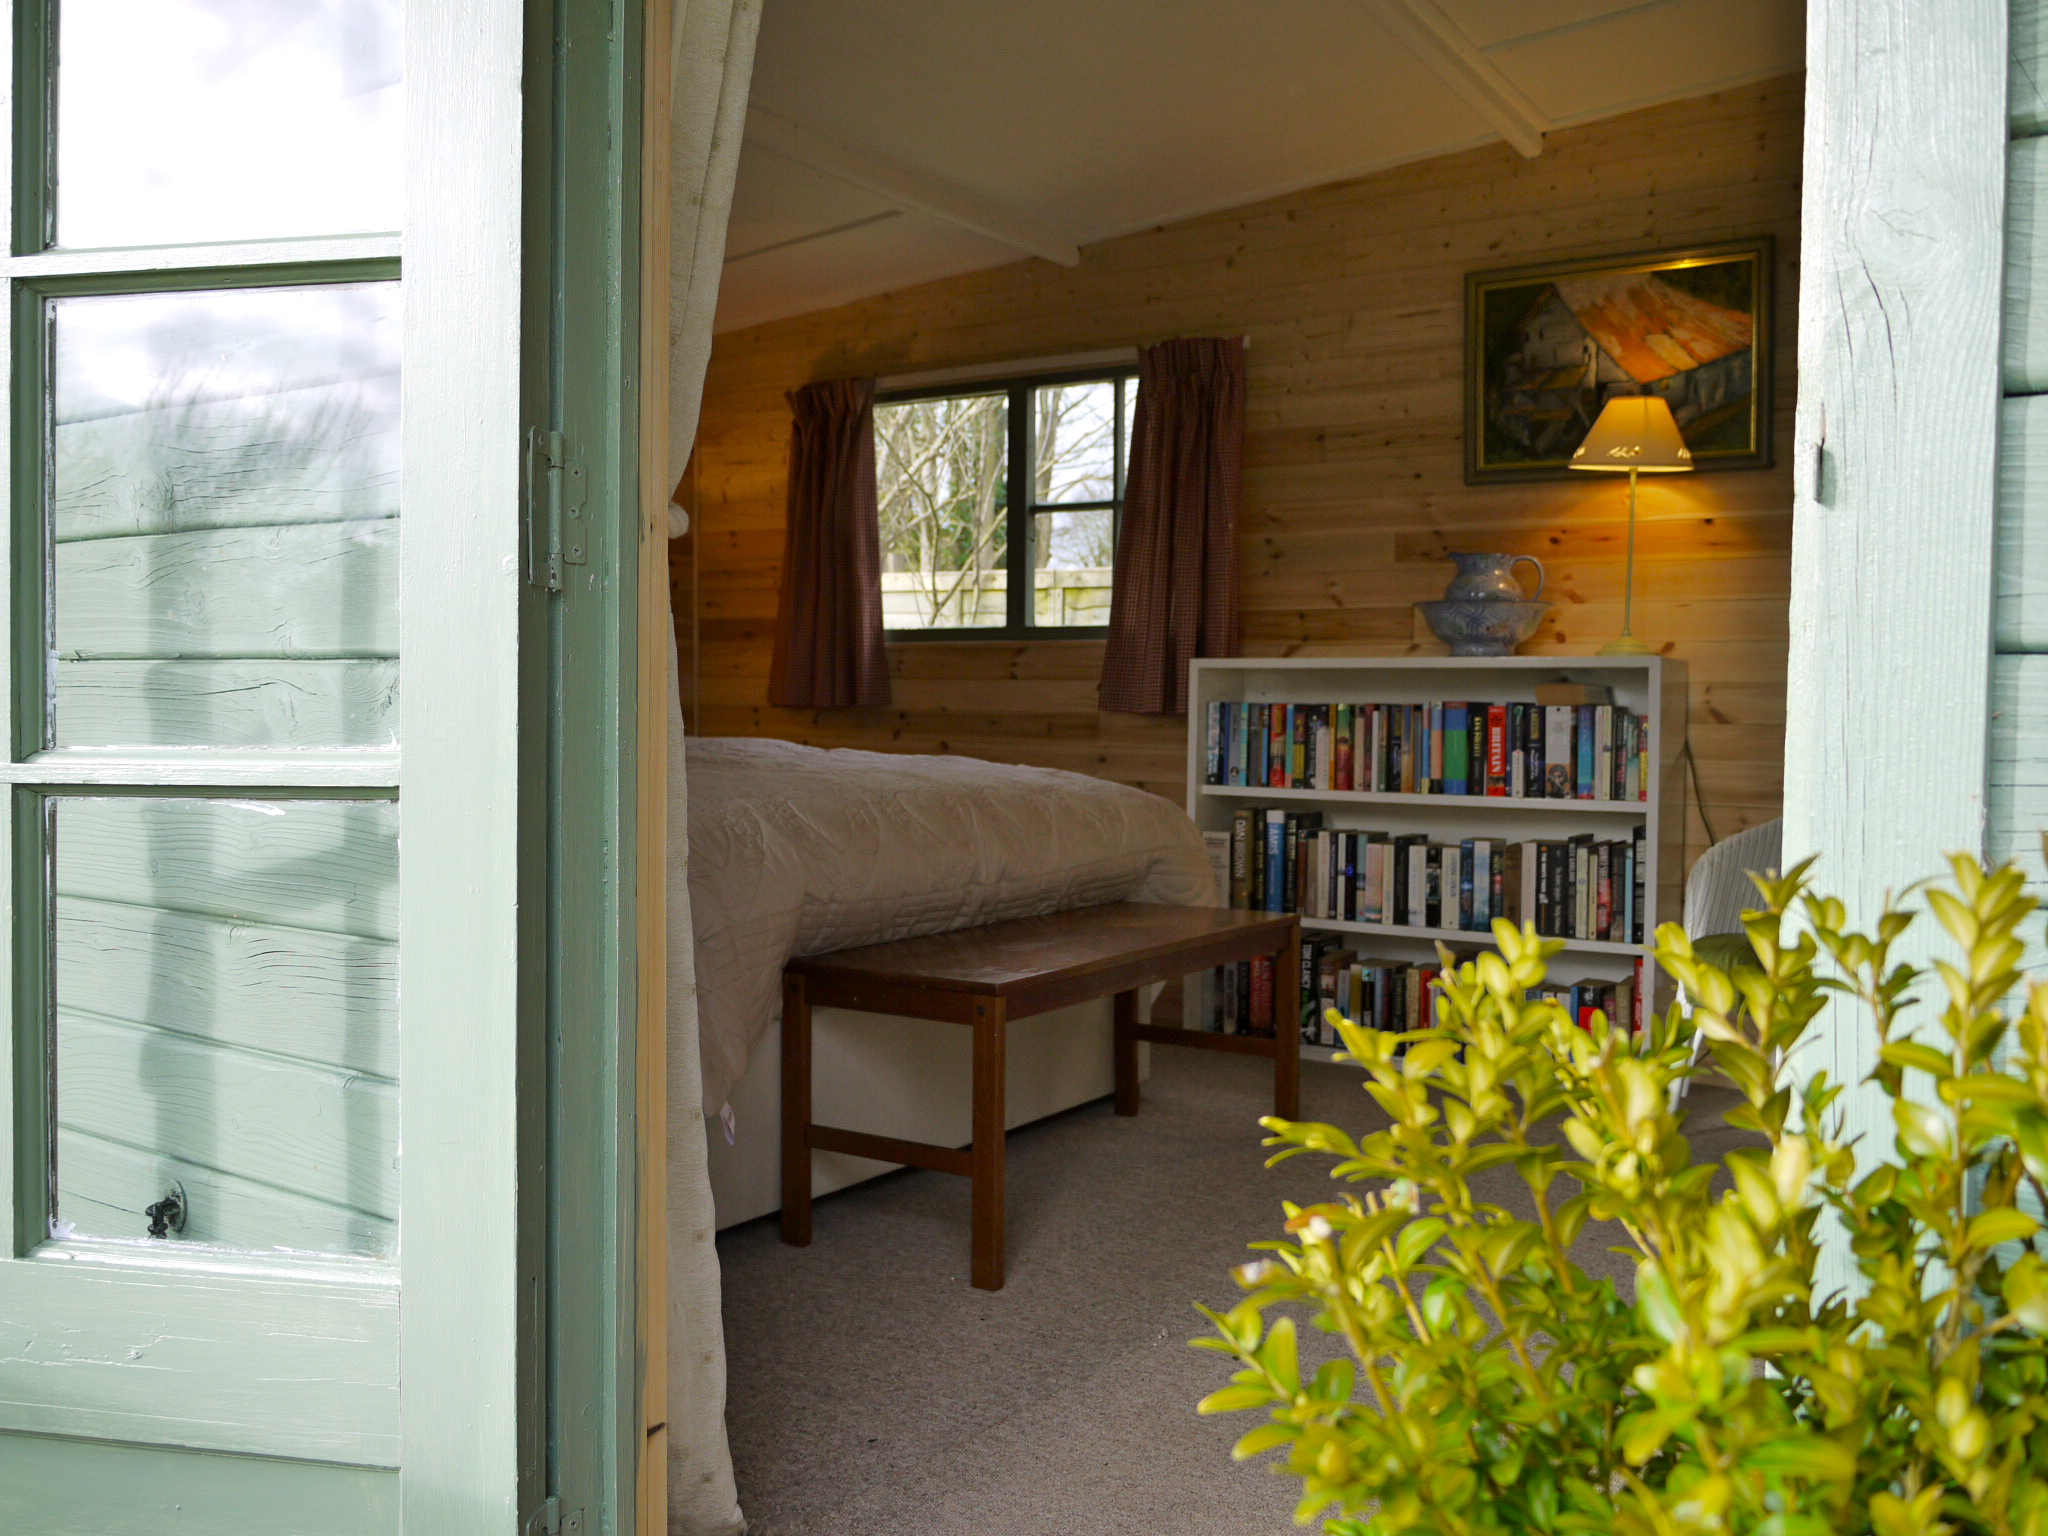 Bedroom of the Lodge